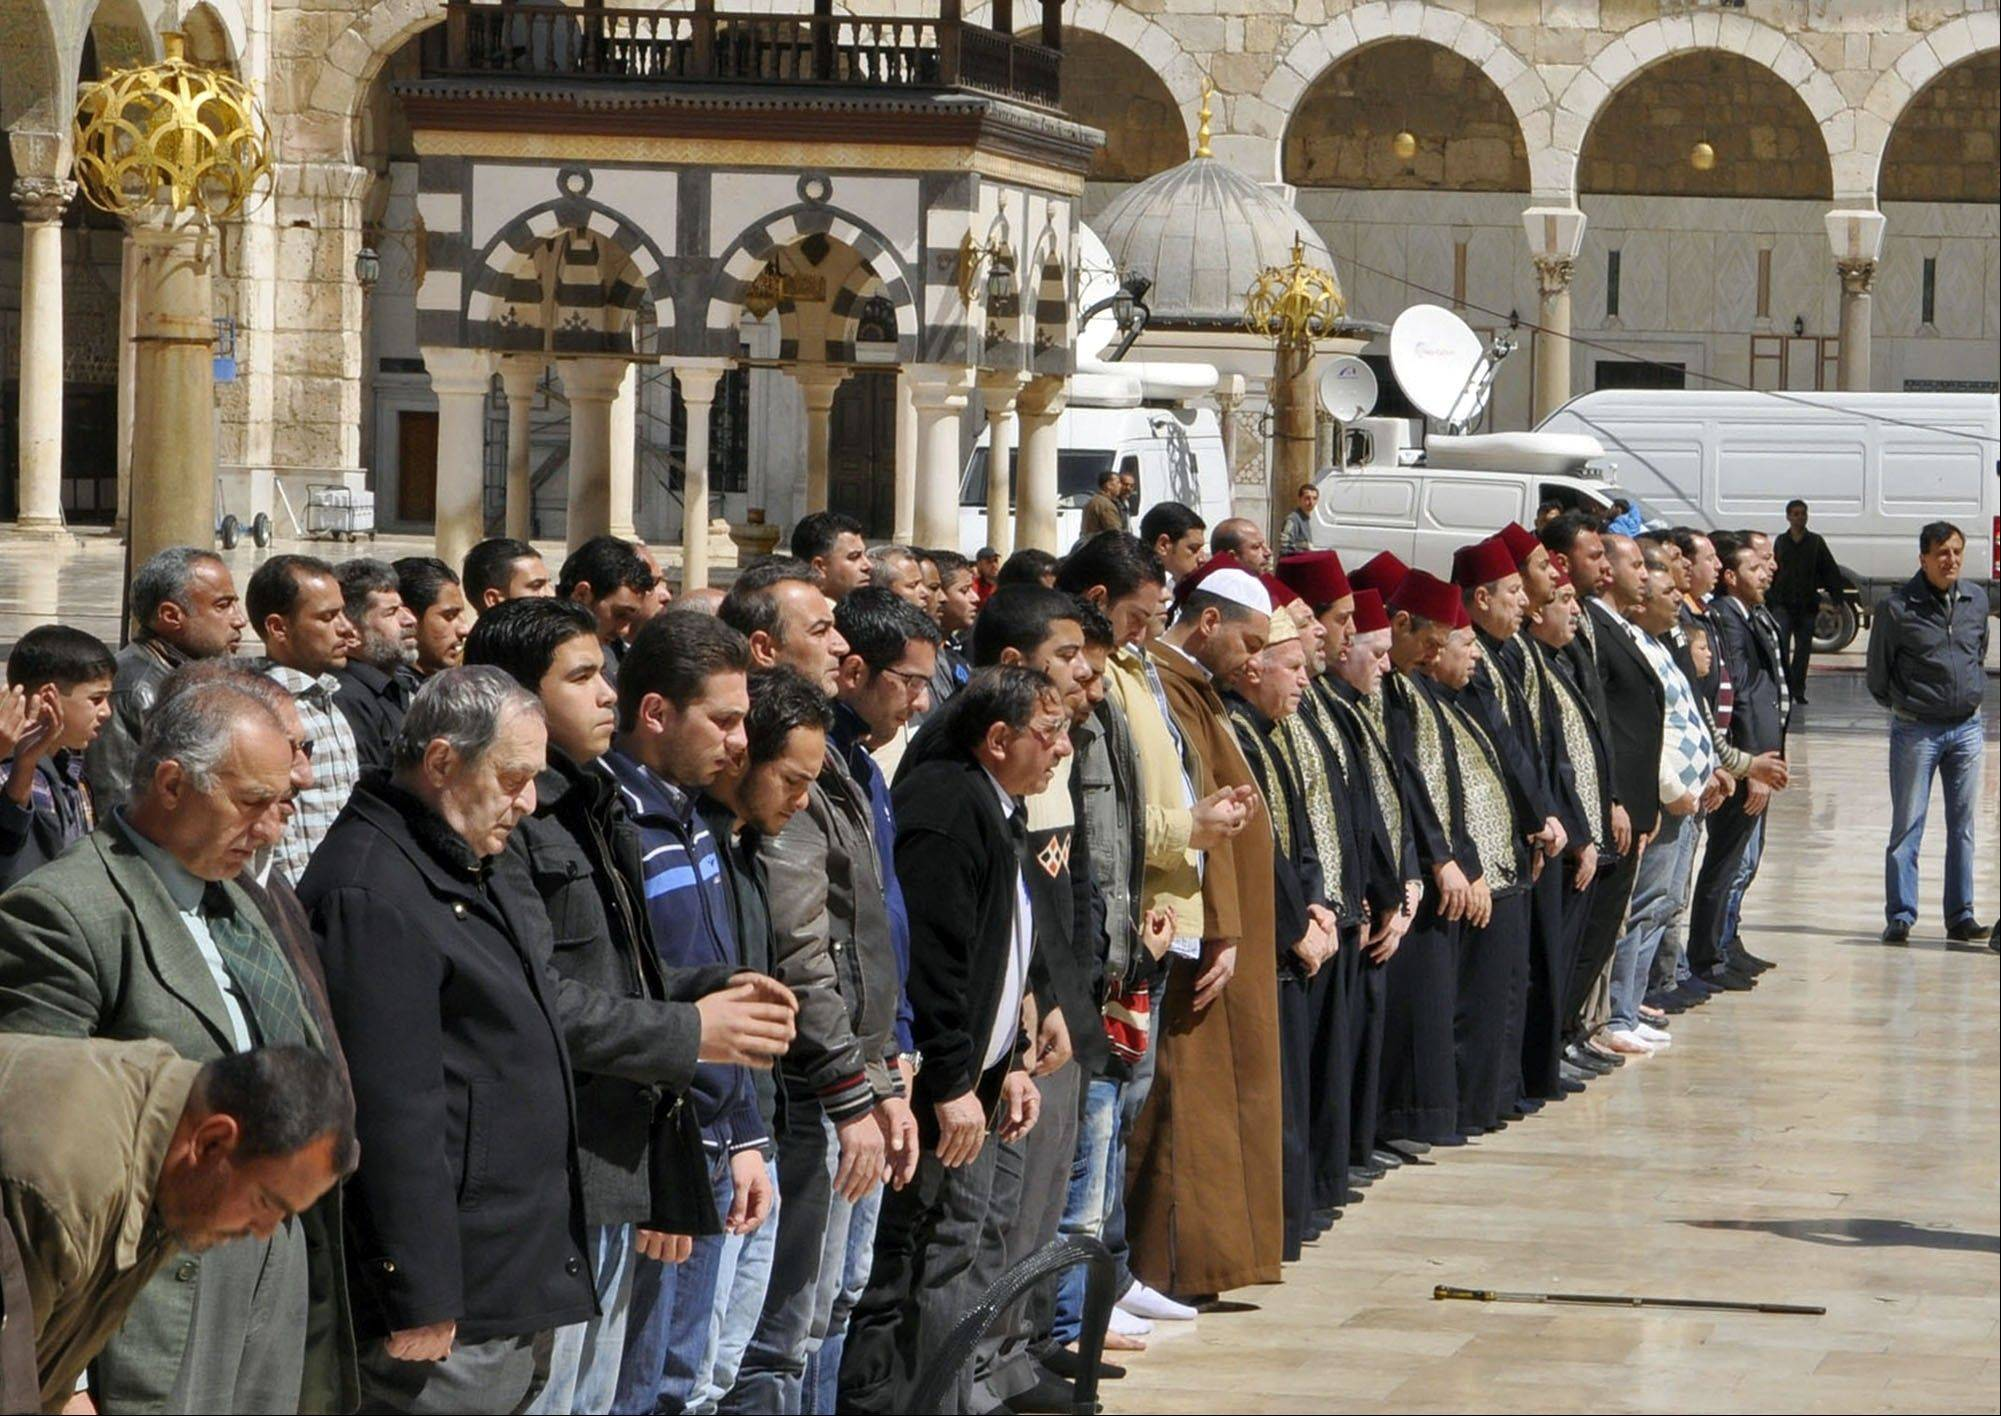 Mourners pray Saturday during the funeral of Sheik Mohammad Said Ramadan al-Buti, an 84-year-old pro-government cleric in the courtyard of the eighth century Omayyad Mosque, in Damascus, Syria. Al-Buti, his grandson and scores of others were killed Thursday when a suicide bomber detonated his explosives inside a mosque.